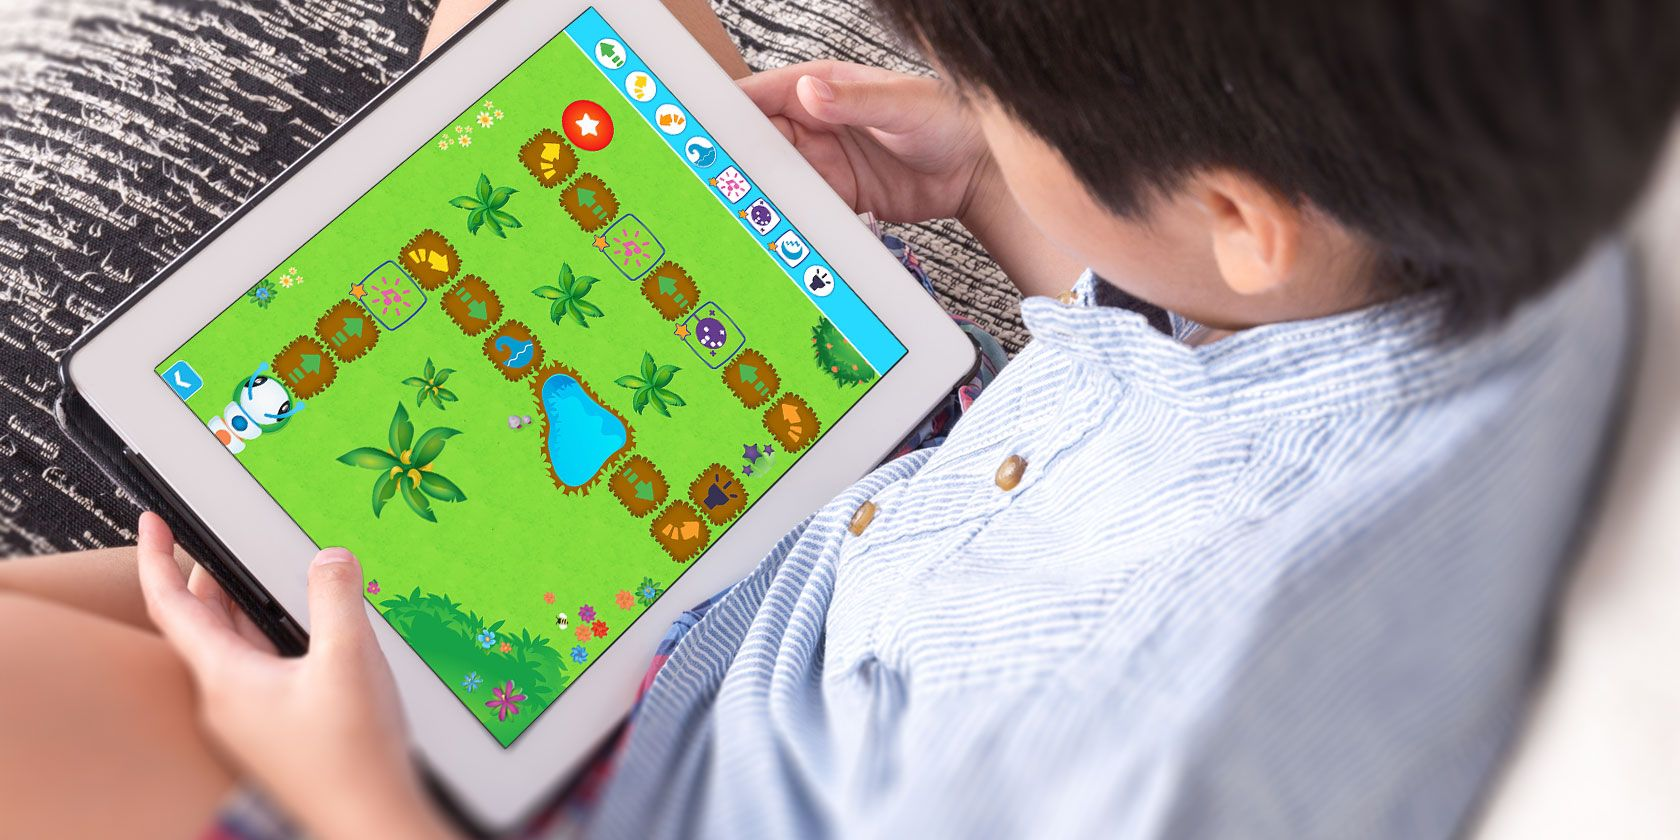 The 7 Best Coding Apps for Kids to Learn Programming | MakeUseOf